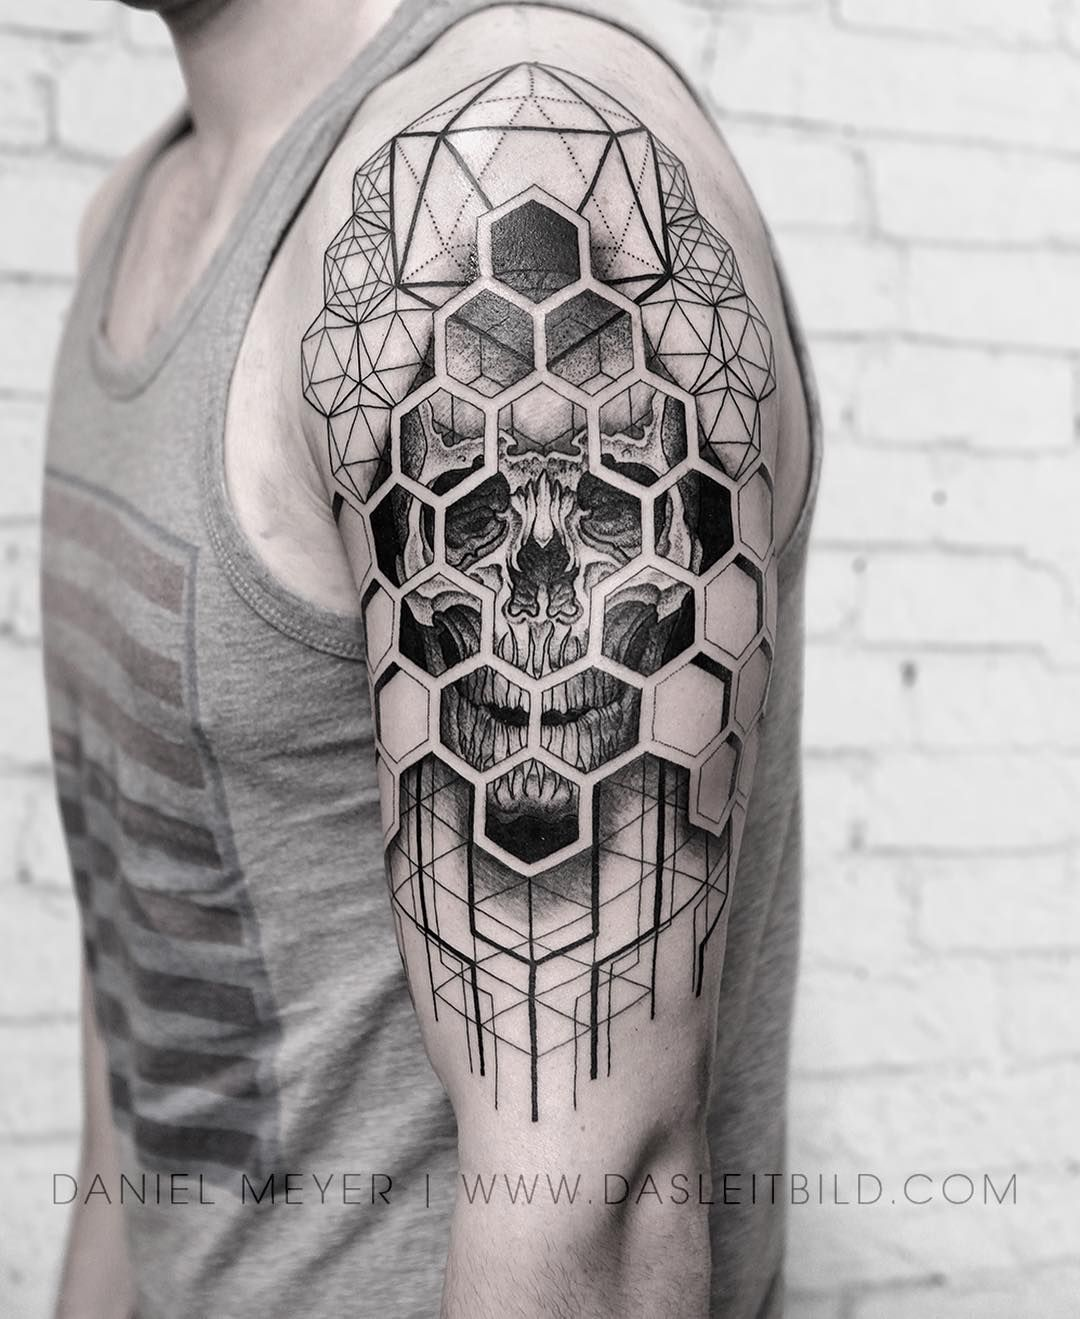 Hexagon Skull In Progress Los Angeles Booking Requests Www Dasleitbild Com Contact Or Contactleitbild Gmail Com In 2020 Hexagon Tattoo Black White Tattoos Tattoos